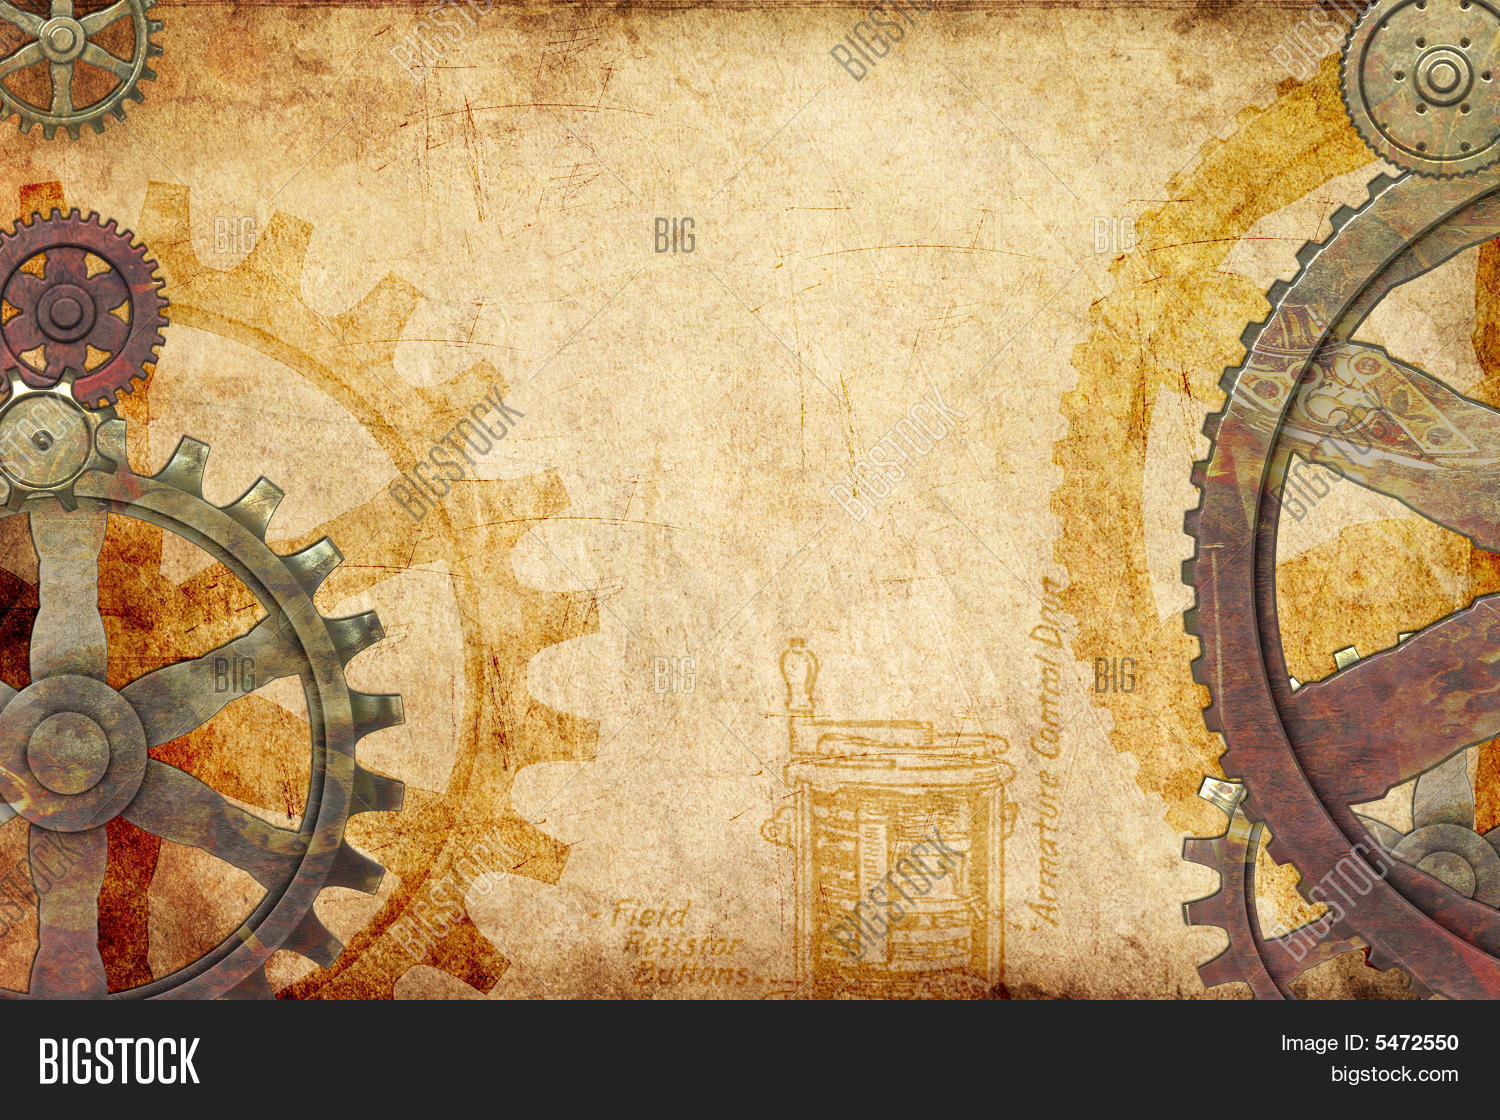 steampunk background image photo free trial bigstock